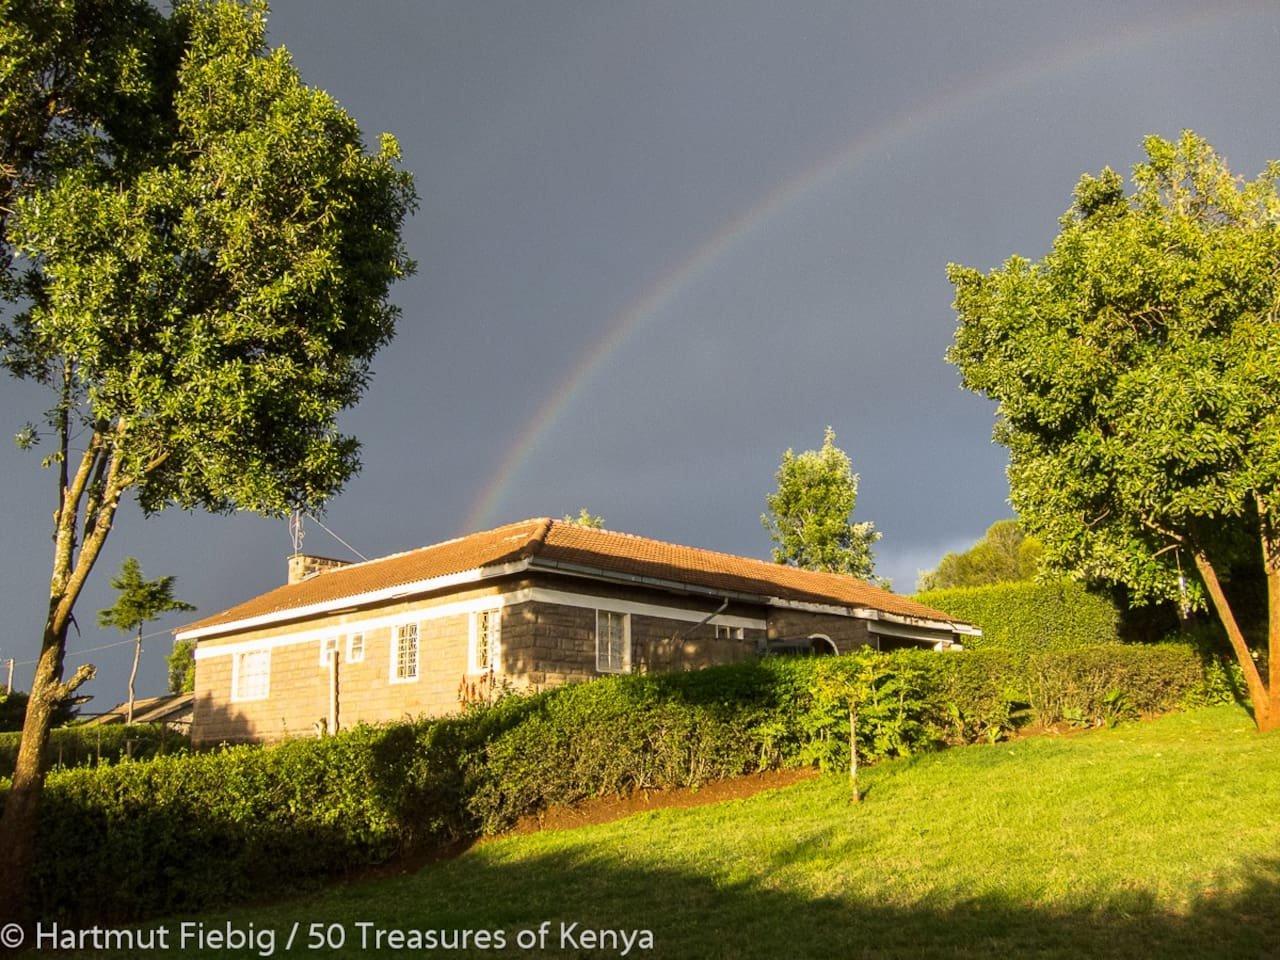 Hazina House and some of our avocado trees seen from the garden - graced by the kiss of a rainbow.